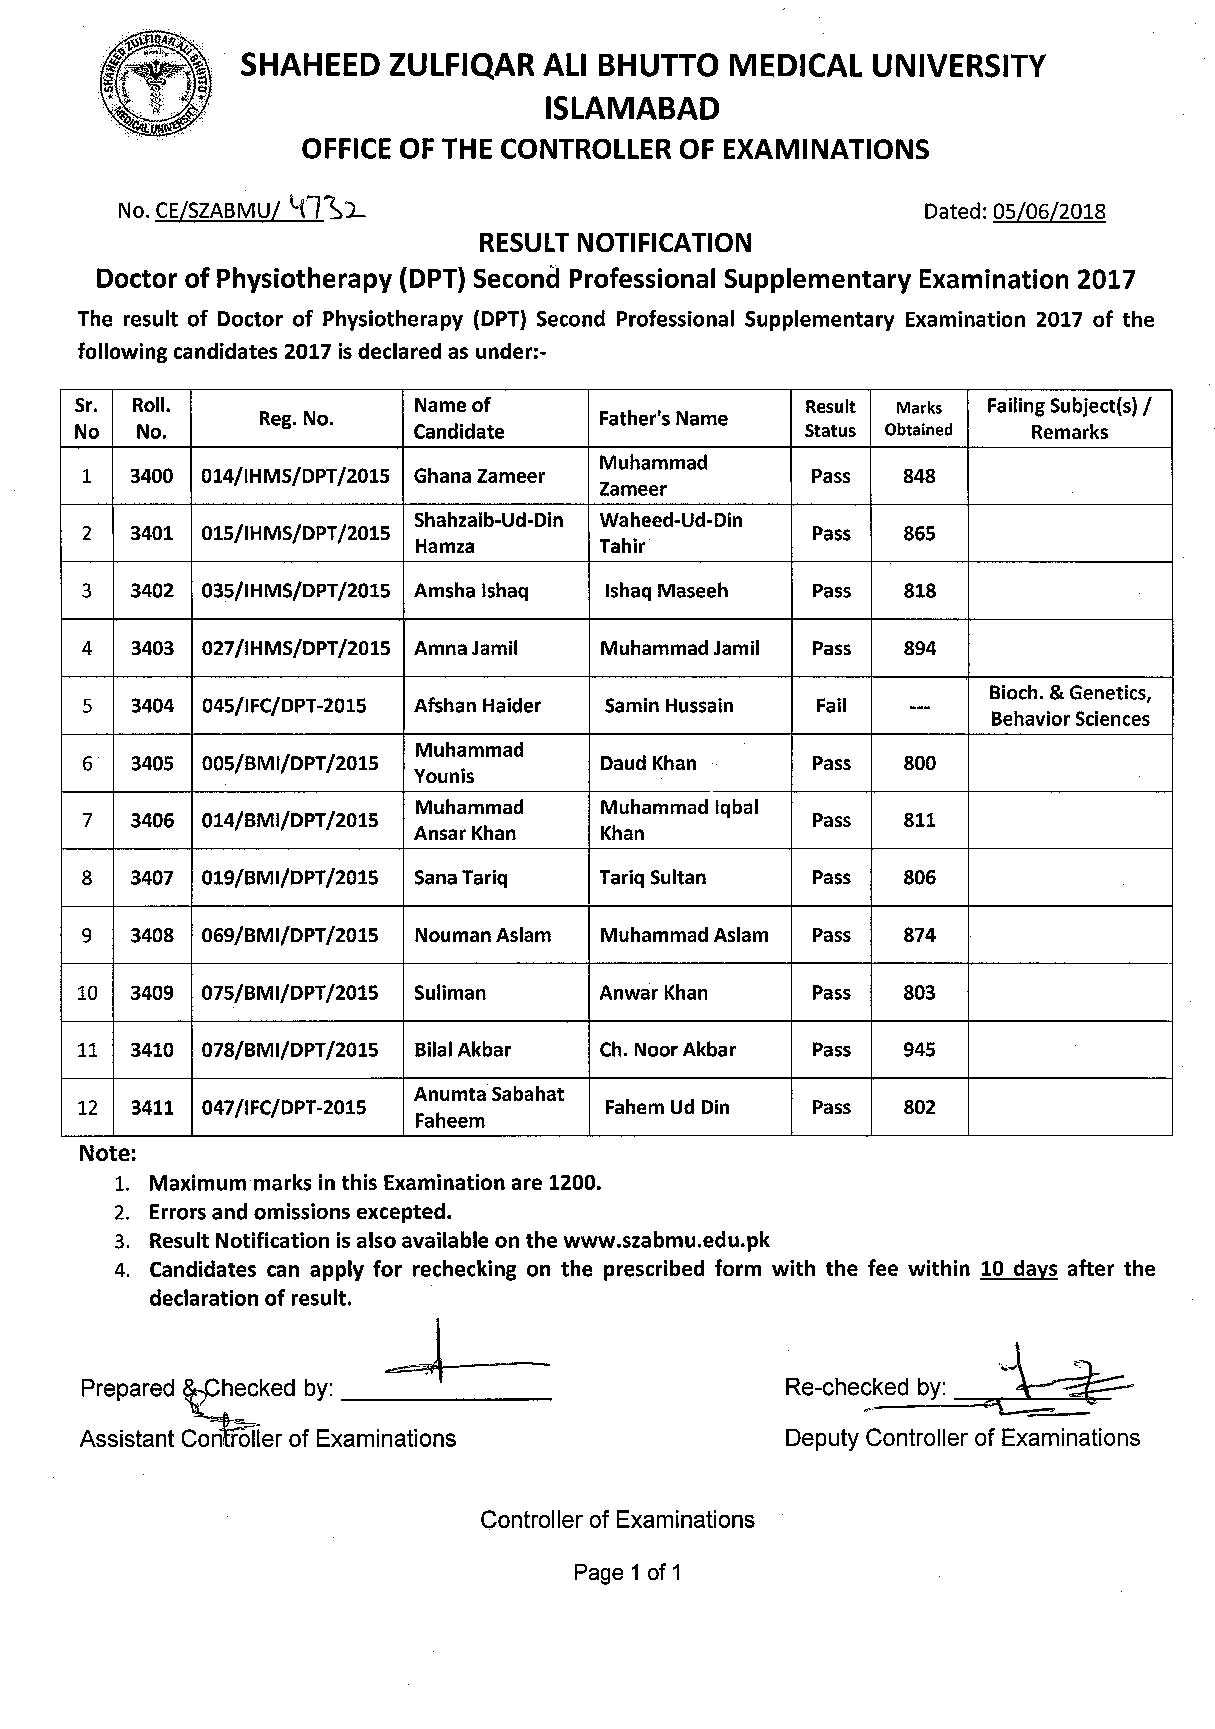 Result Notifications - DPT 2nd Professional Supplementary Exam 2017